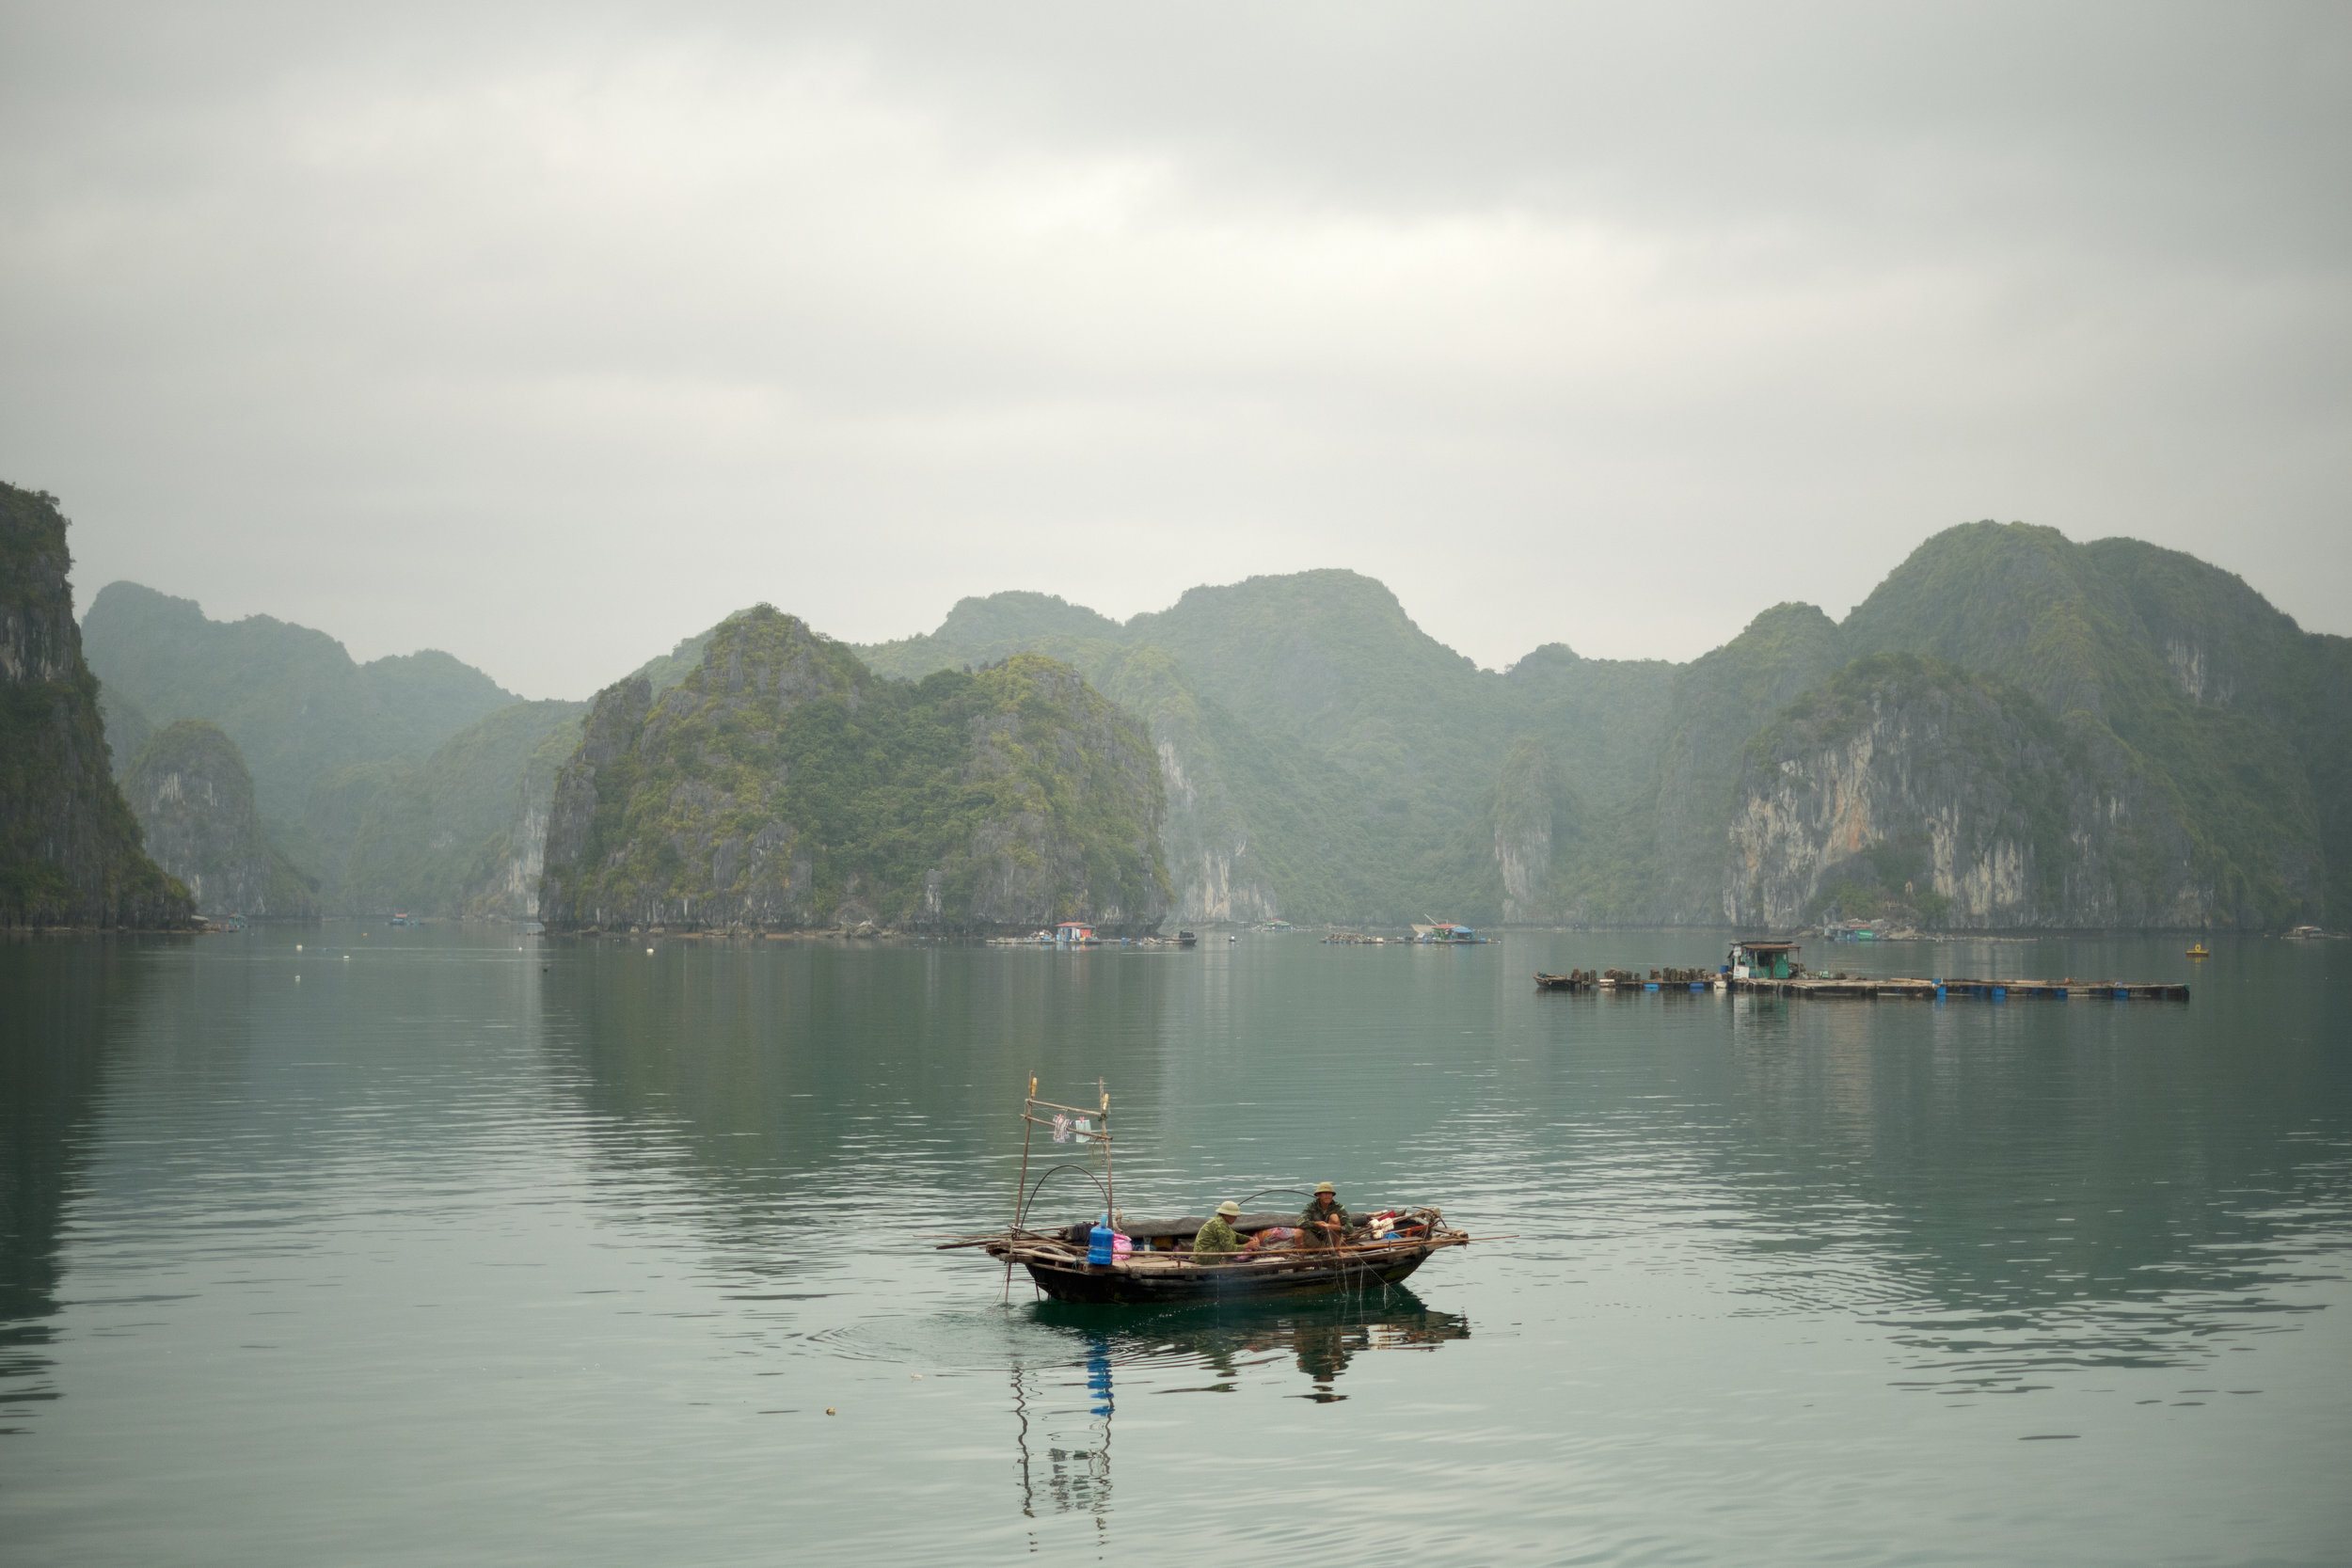 Two men working from their fishing boat near a floating village on Lan Ha Bay.